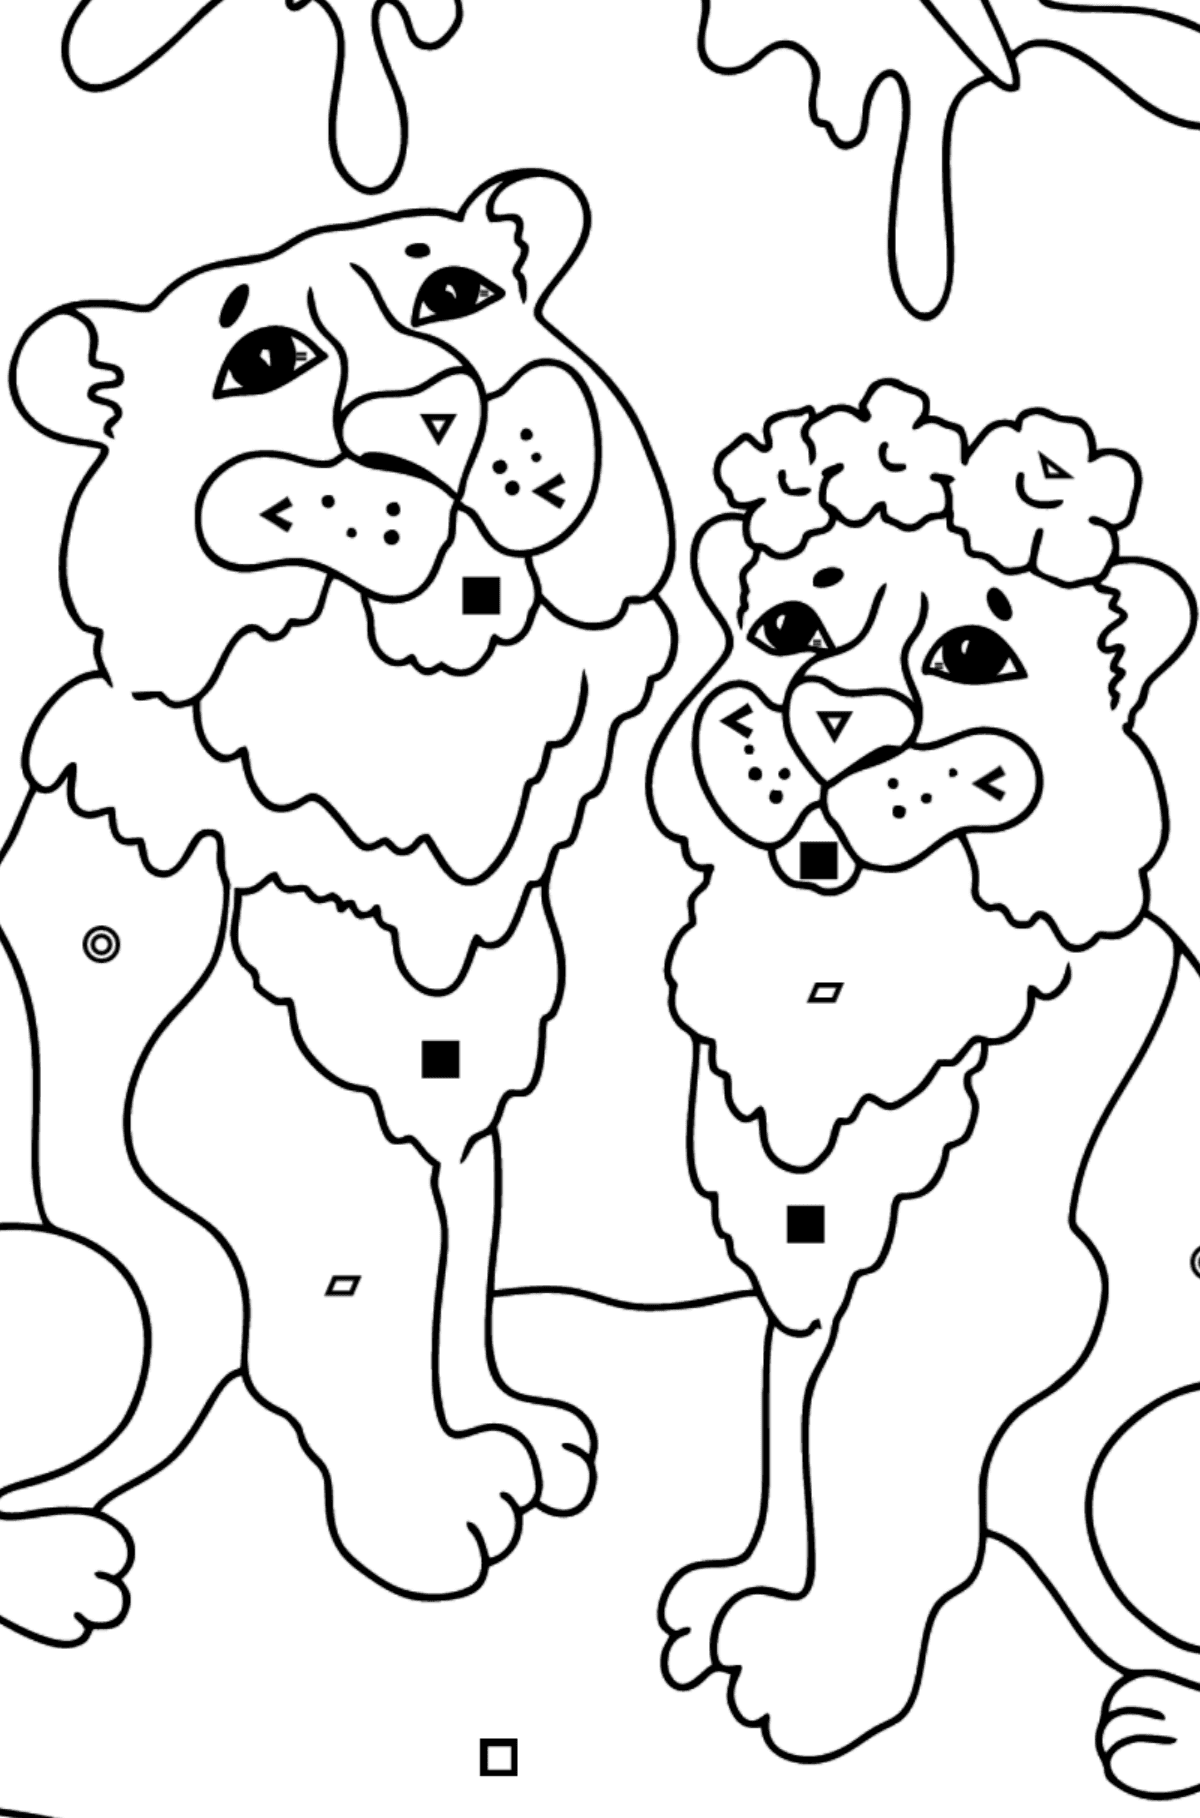 Coloring Page - Tigers with Butterflies - Coloring by Symbols and Geometric Shapes for Kids